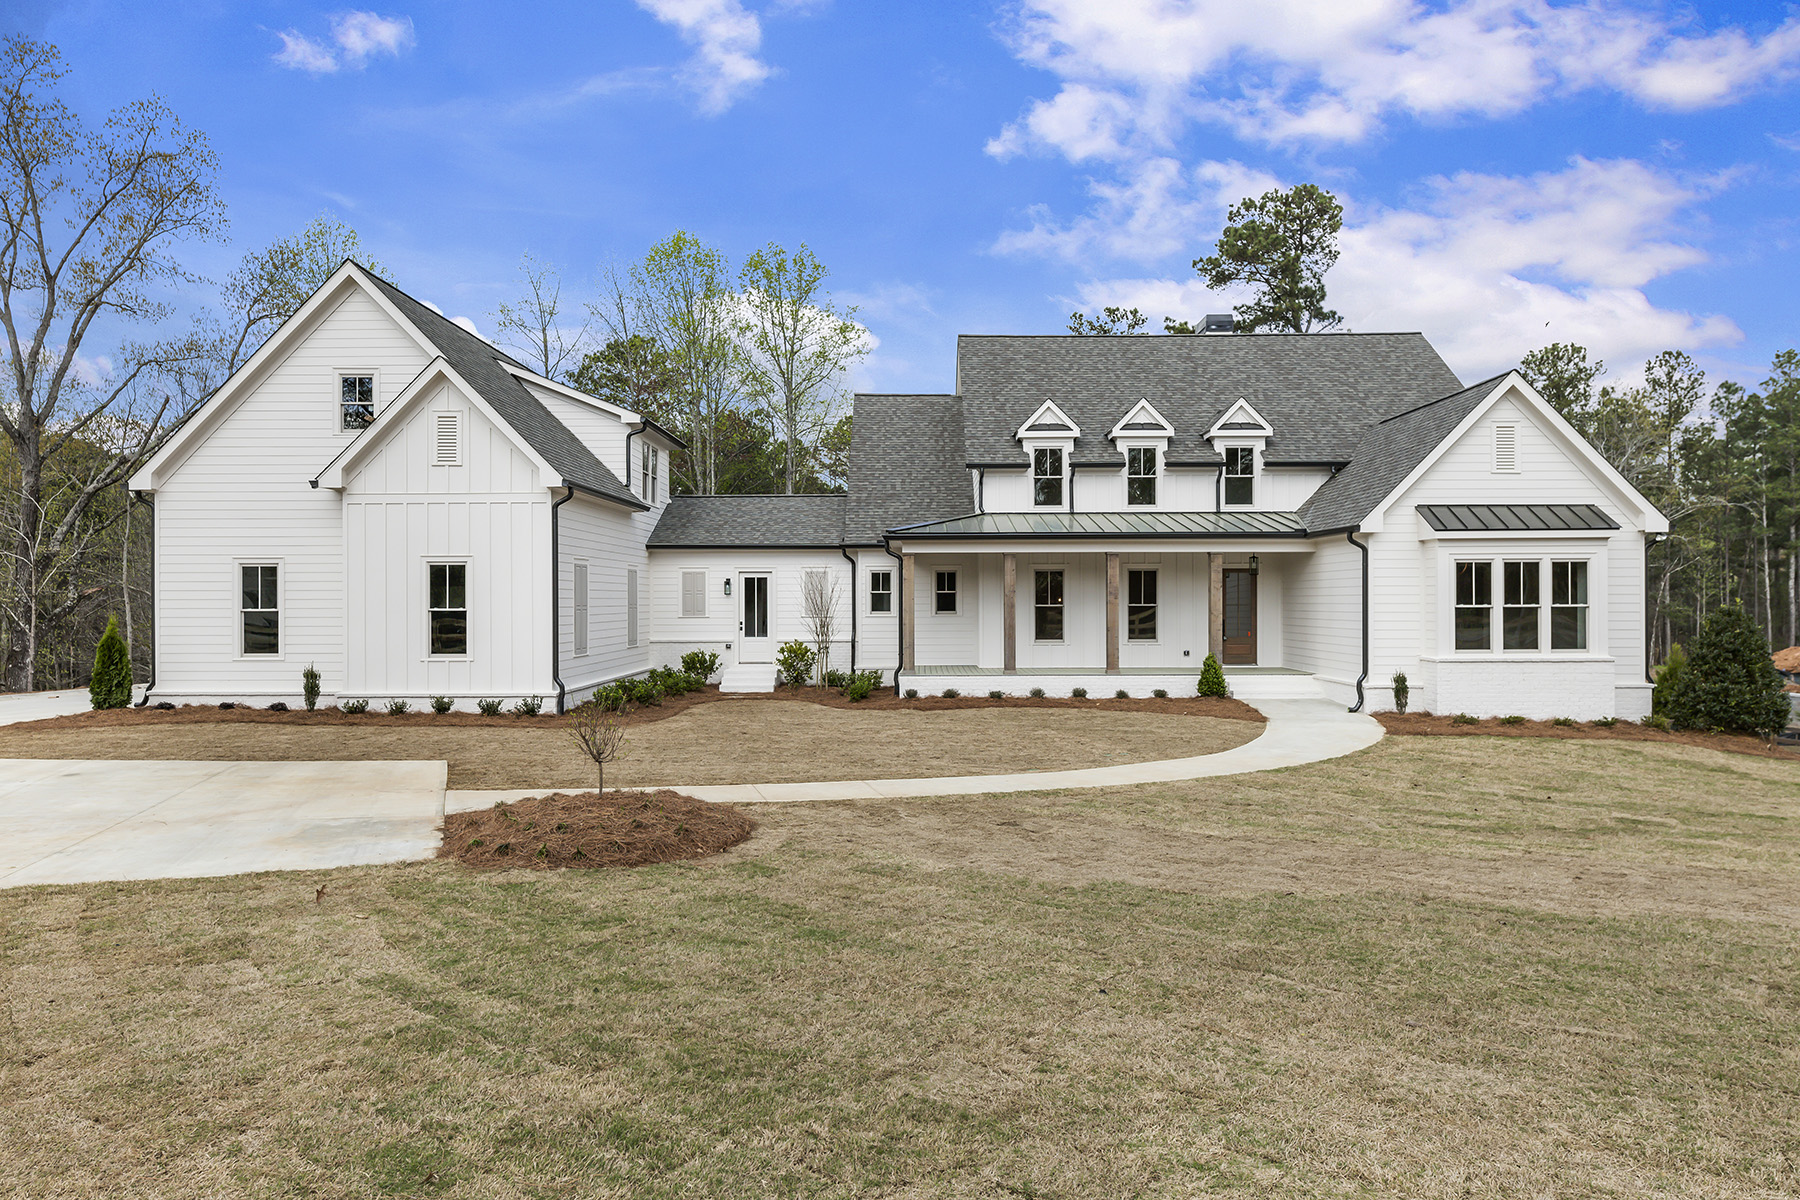 Single Family Homes for Active at New Construction In Cherokee County 1223 Old Lathemtown Road Canton, Georgia 30115 United States